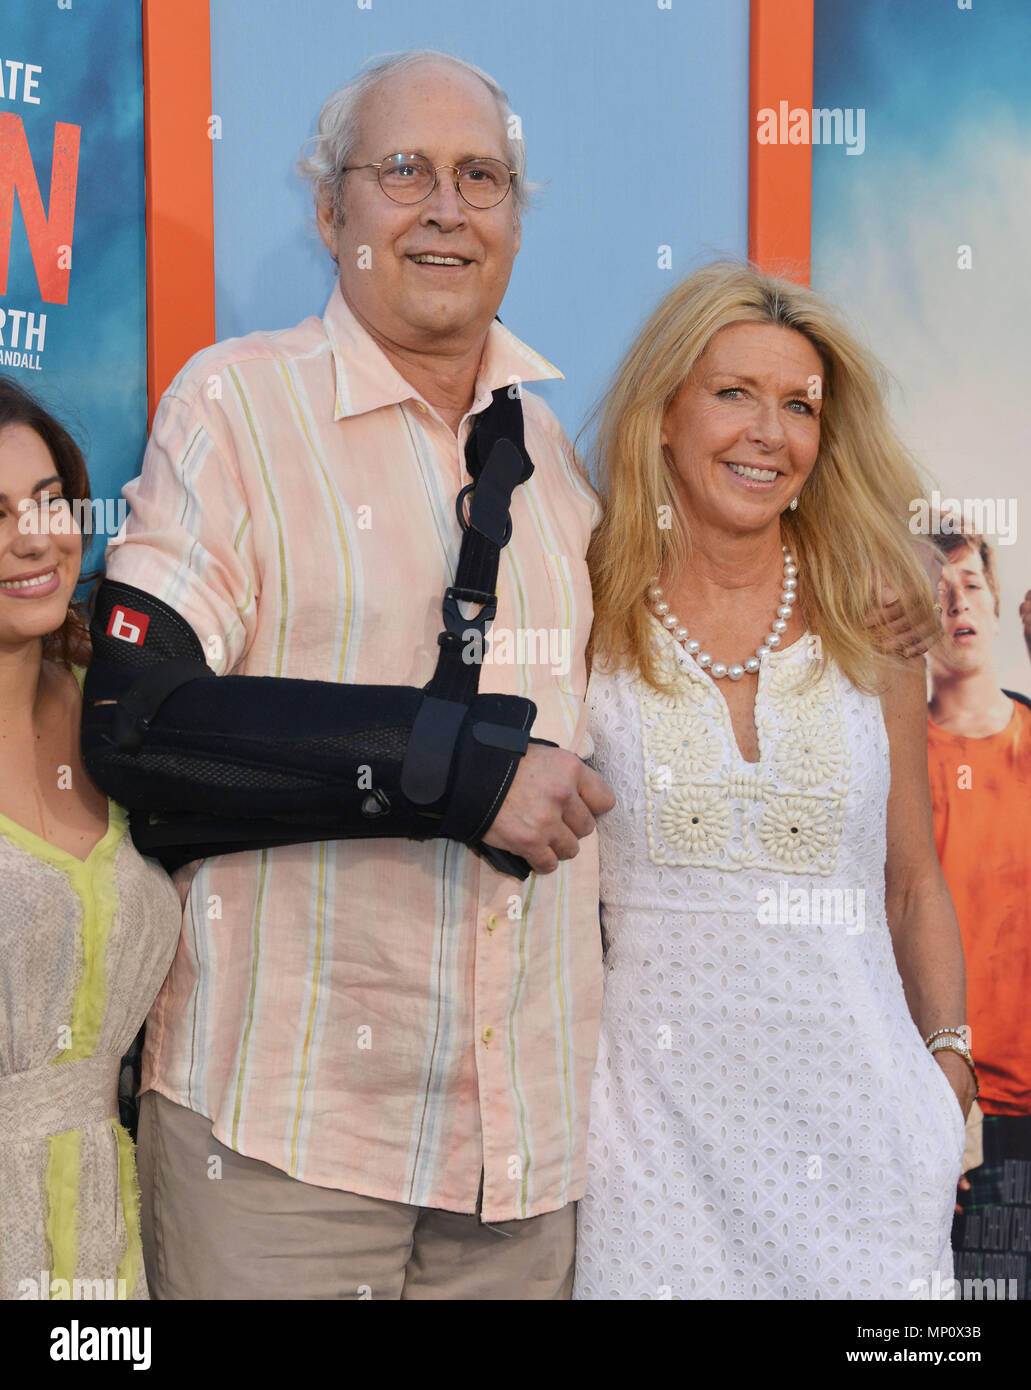 Chevy Chase Wife Jayni Chase 110 At The The Premiere Of Vacation At The Regency Village Theatre In Los Angeles July 27 2015 A Chevy Chase Wife Jayni Chase 110 Red Actor chevy chase, best known for foul play, has accomplished something that not many have before tying the knot with jayni chase, chevy was married to susan hewitt and jacqueline carlin. https www alamy com chevy chase wife jayni chase 110 at the the premiere of vacation at the regency village theatre in los angeles july 27 2015 a chevy chase wife jayni chase 110 red carpet event vertical usa film industry celebrities photography bestof arts culture and entertainment topix celebrities fashion vertical best of event in hollywood life california red carpet and backstage usa film industry celebrities movie celebrities tv celebrities music celebrities photography bestof arts culture and entertainment topix vertical family from from the year 2015 i image185646591 html